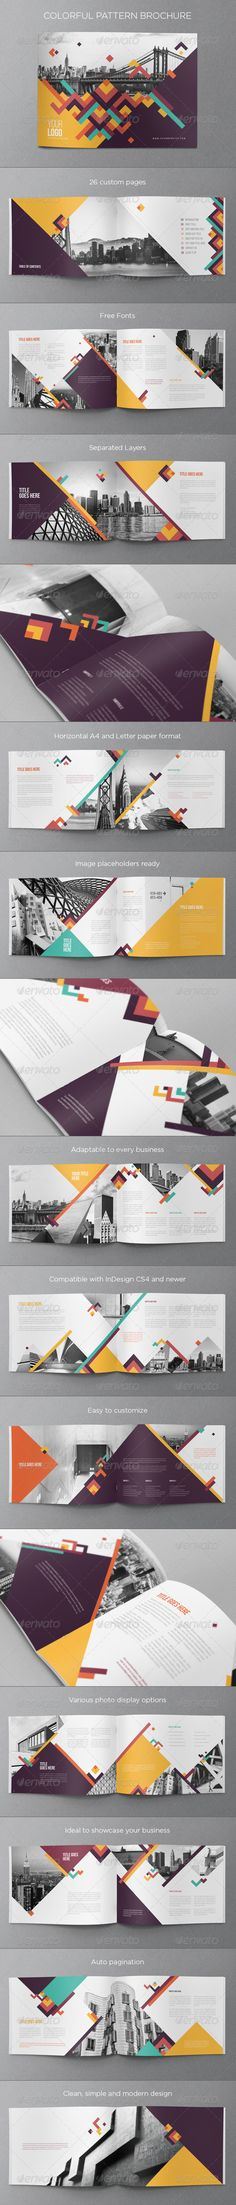 Buy Colorful Pattern Brochure by AbraDesign on GraphicRiver. COLORFUL PATTERN BROCHURE This brochure is an ideal way to showcase your business in an original way. Design Brochure, Booklet Design, Brochure Layout, Graphic Design Layouts, Graphic Design Inspiration, Layout Design, Creative Brochure, Brochure Template, Graphisches Design